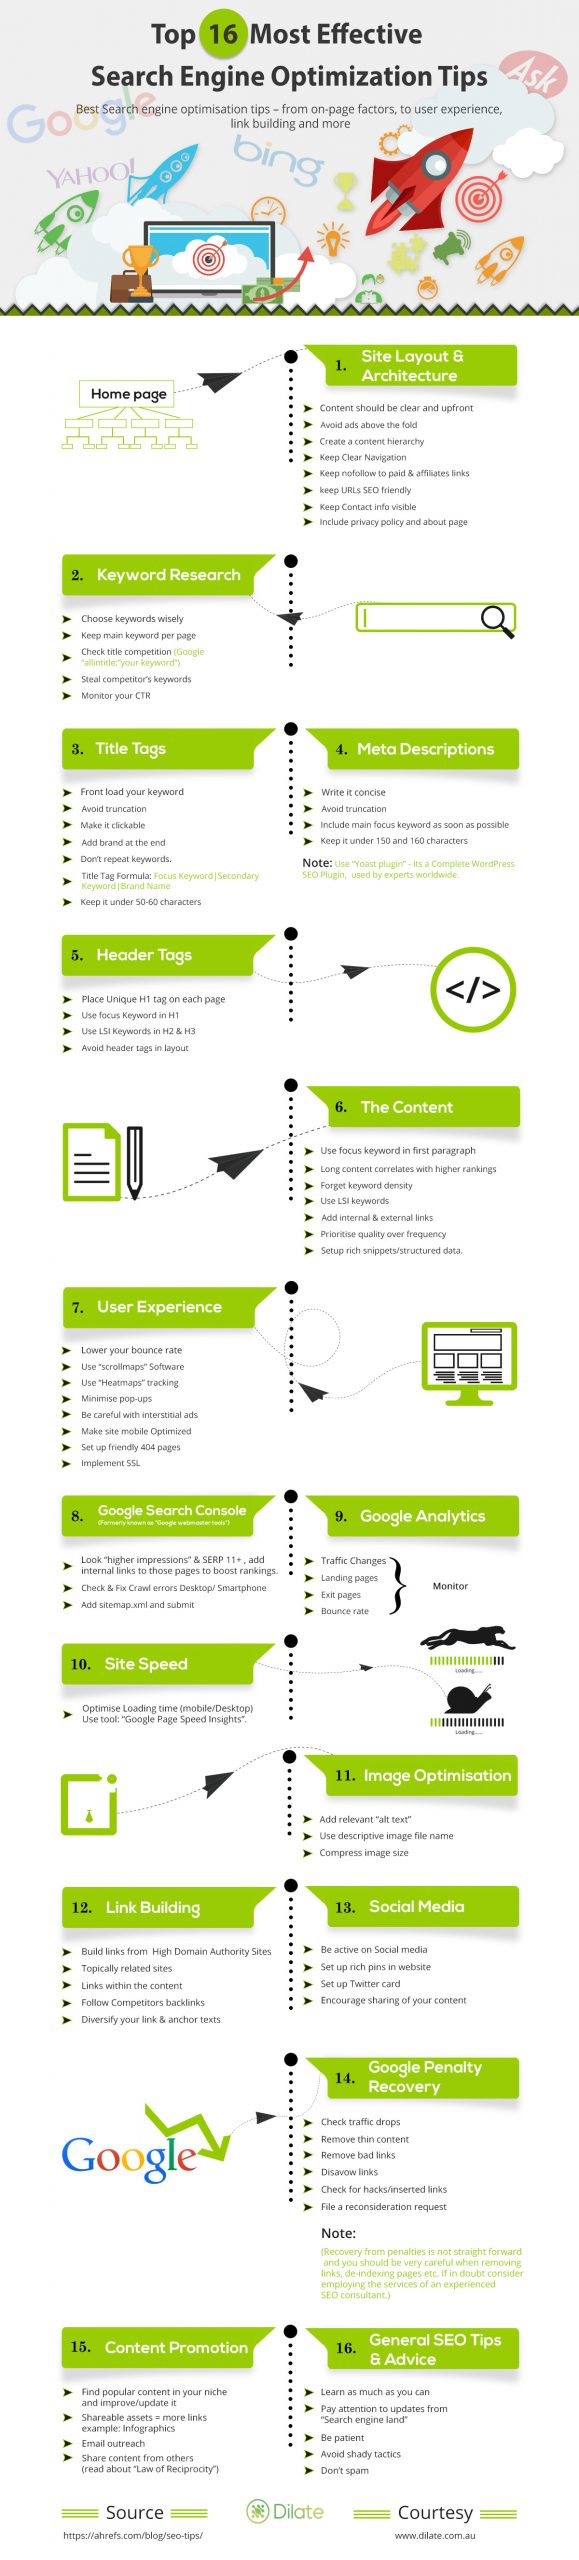 Top 16 Most Effective Search Engine Optimization Tips #infographic